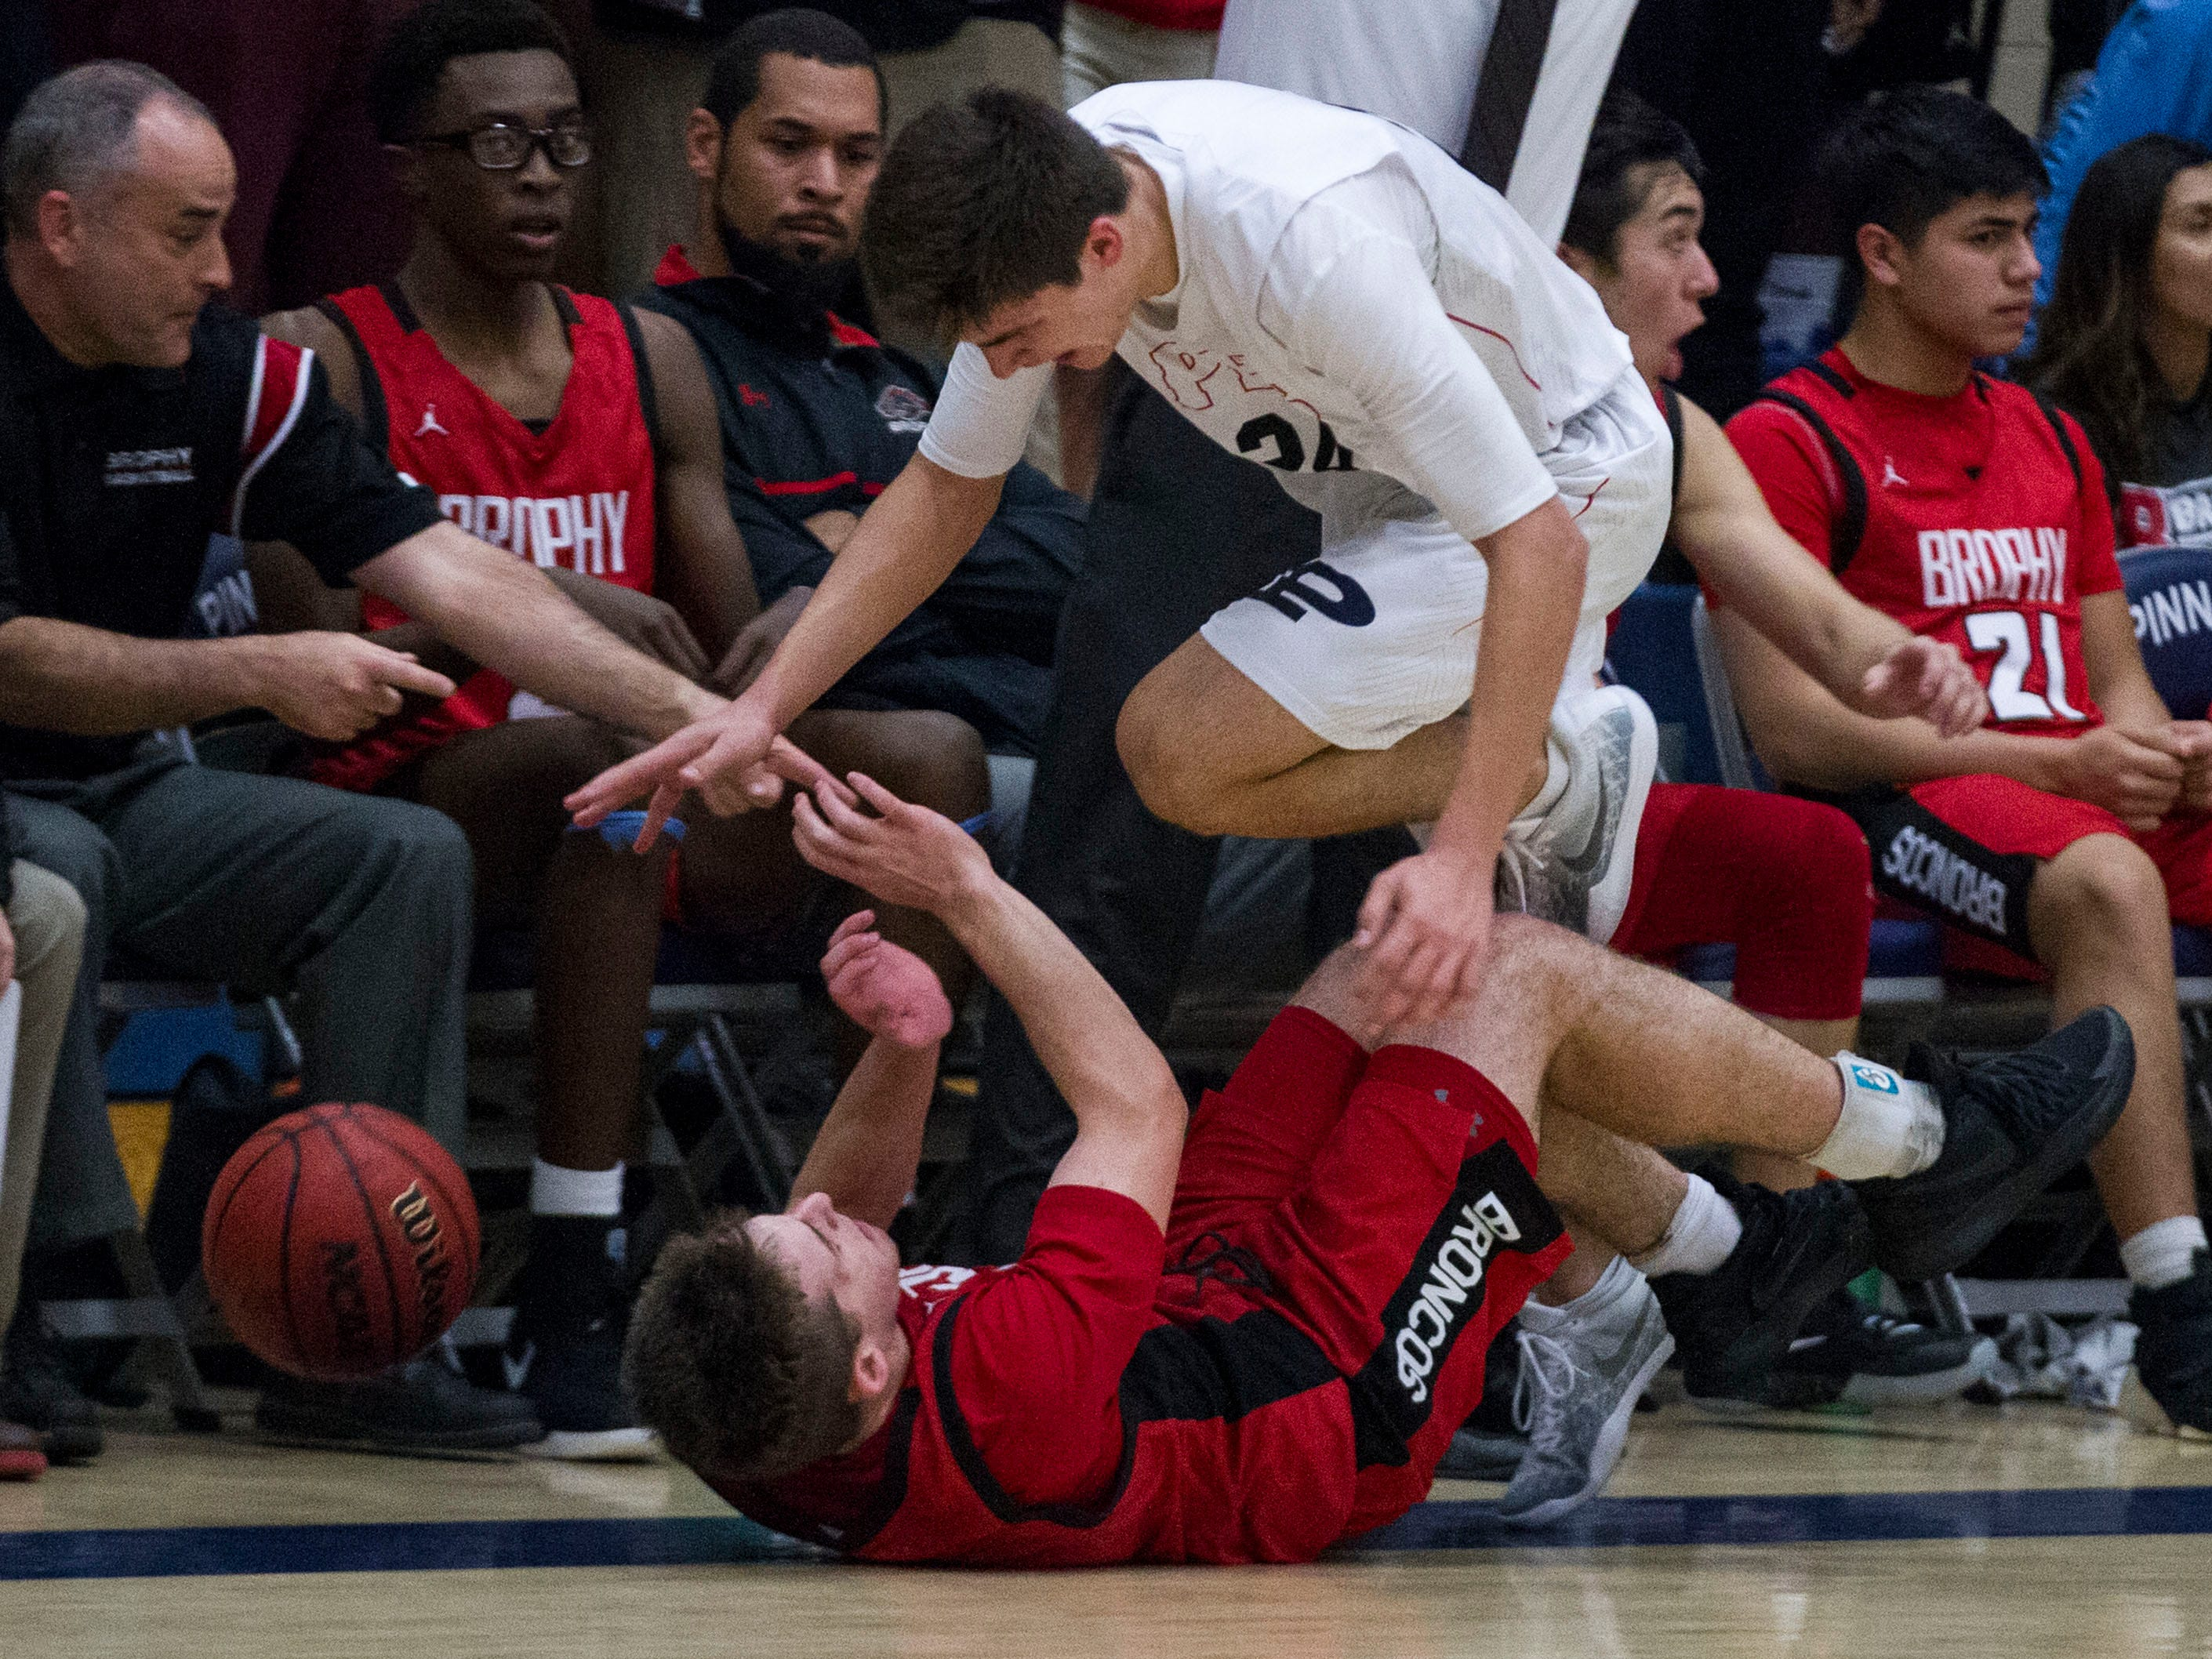 Pinnacle's Trent Brown (24) trips over Brophy's Ryan Gilburne (3) during their game in Phoenix, Friday, Dec. 21, 2018.